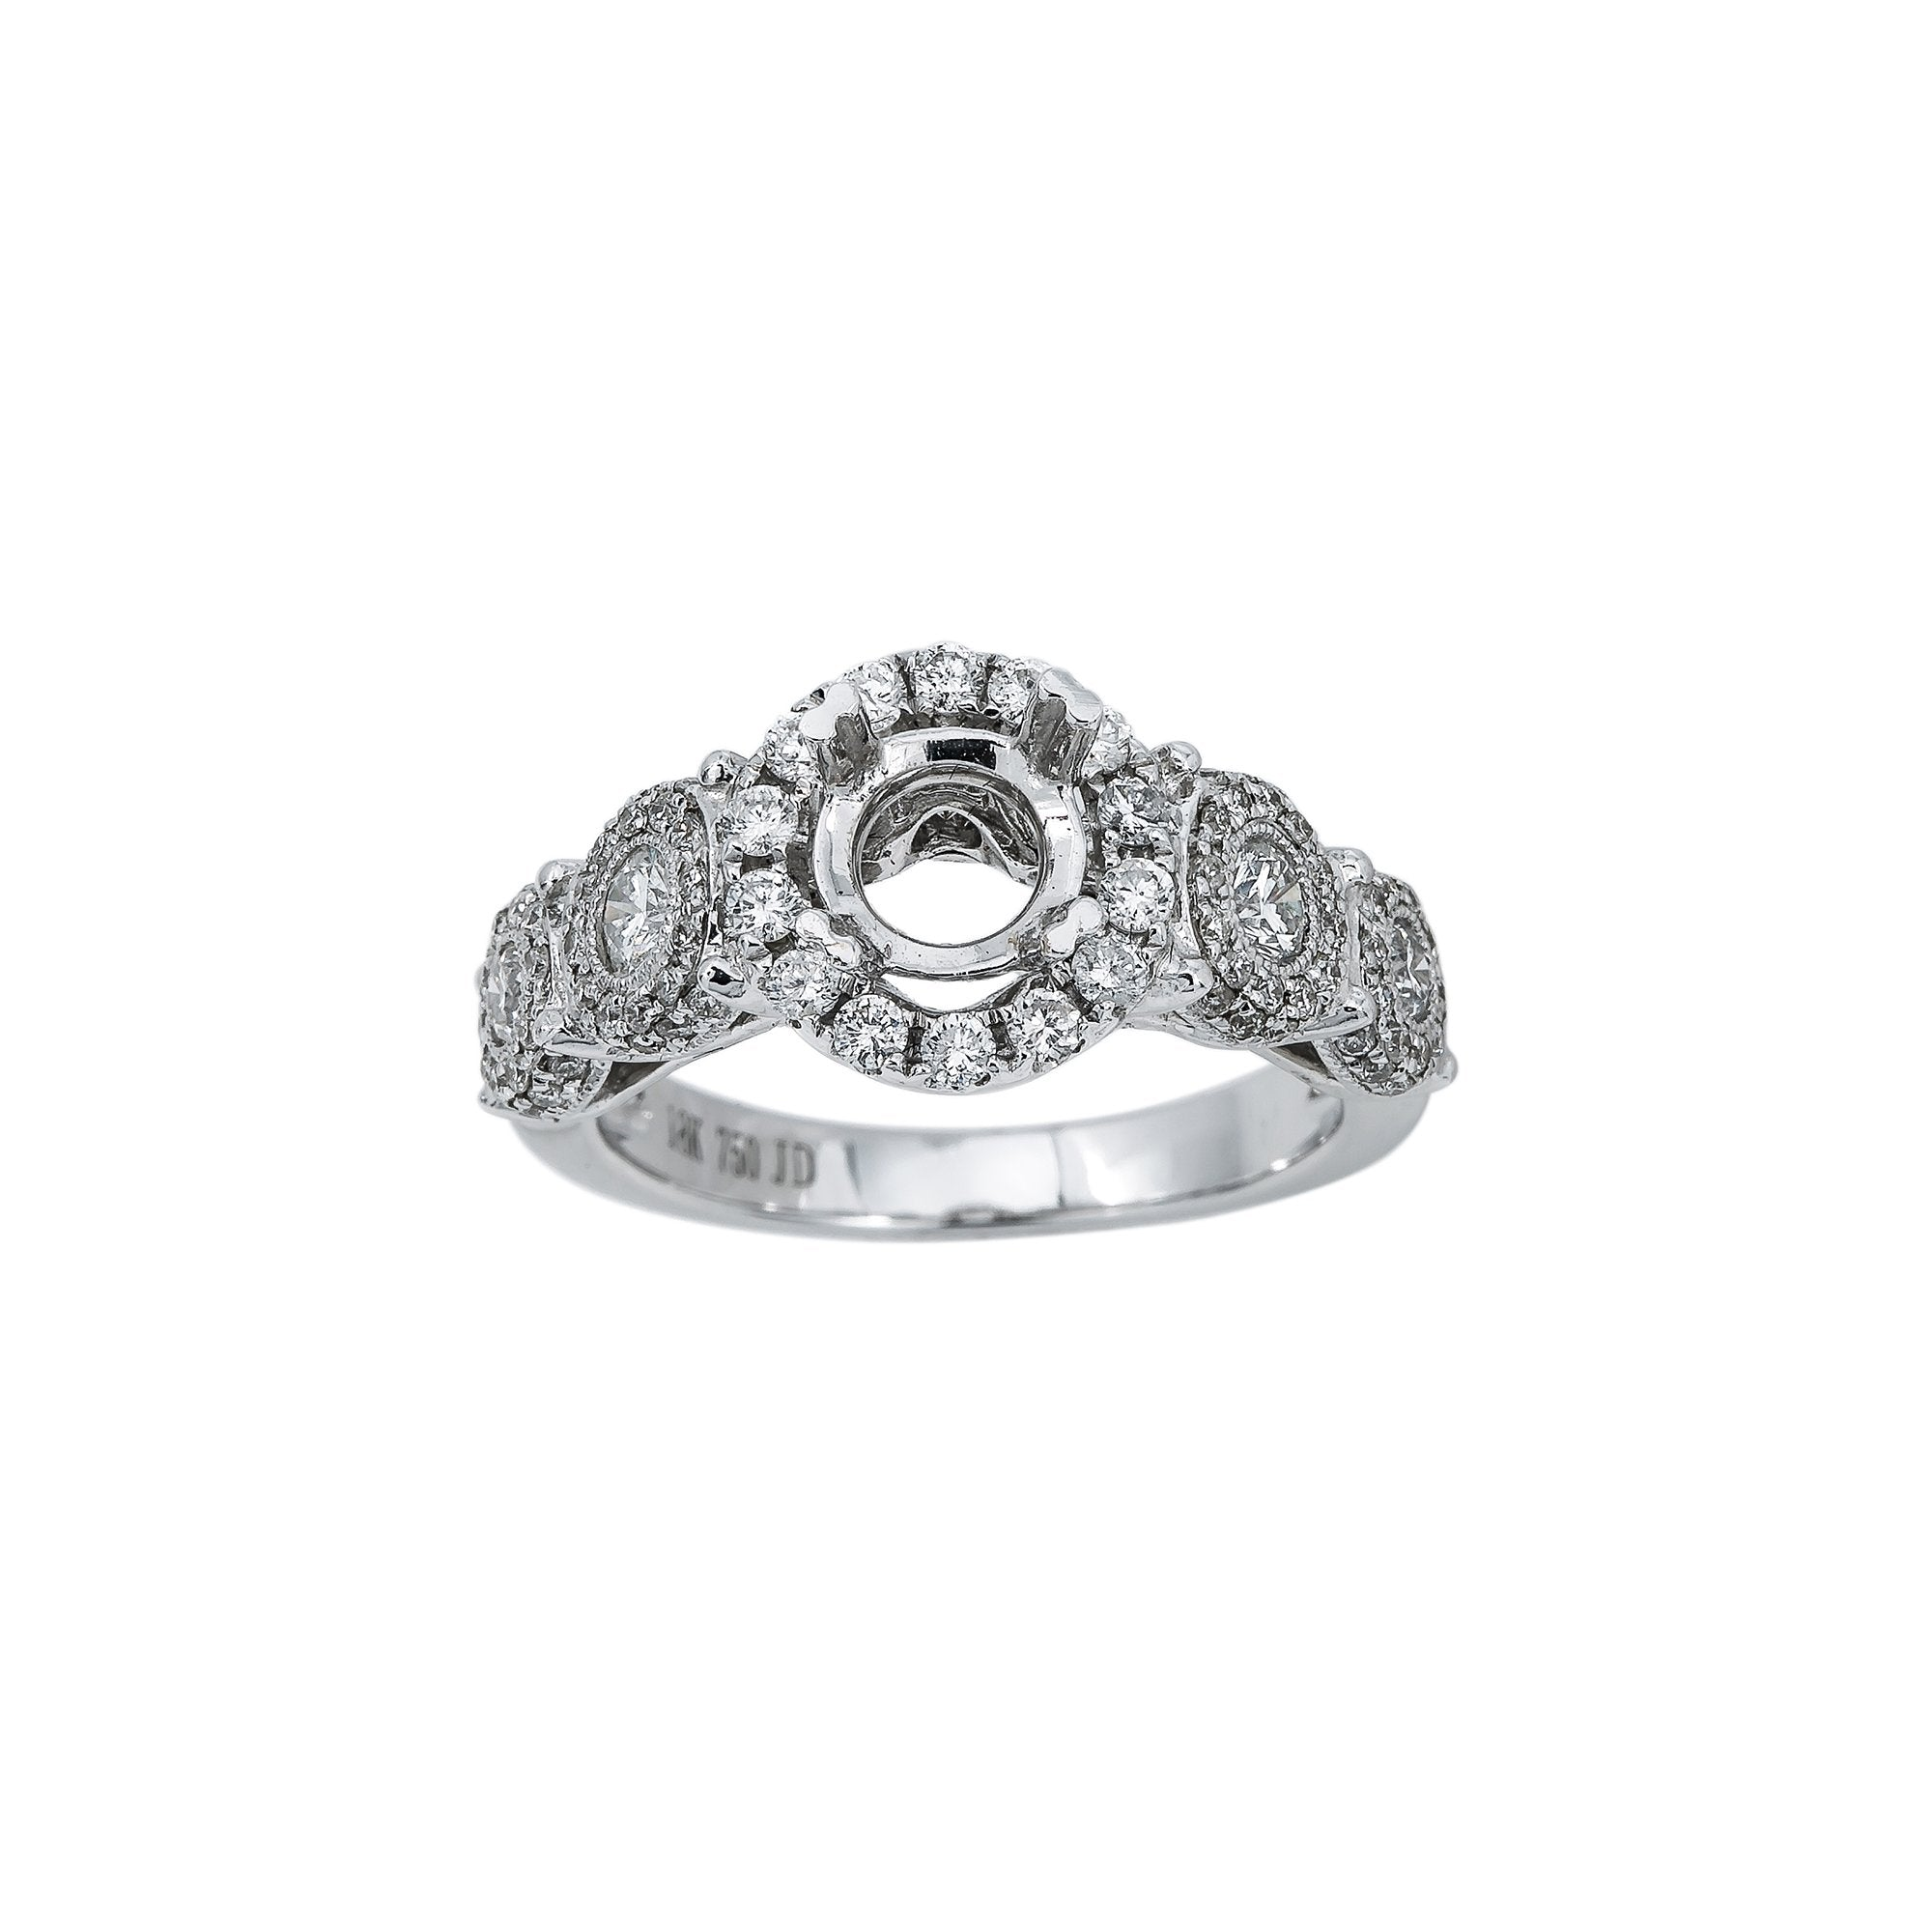 18K White Gold BJ7767R Women's Ring With 1.27 CT Diamonds